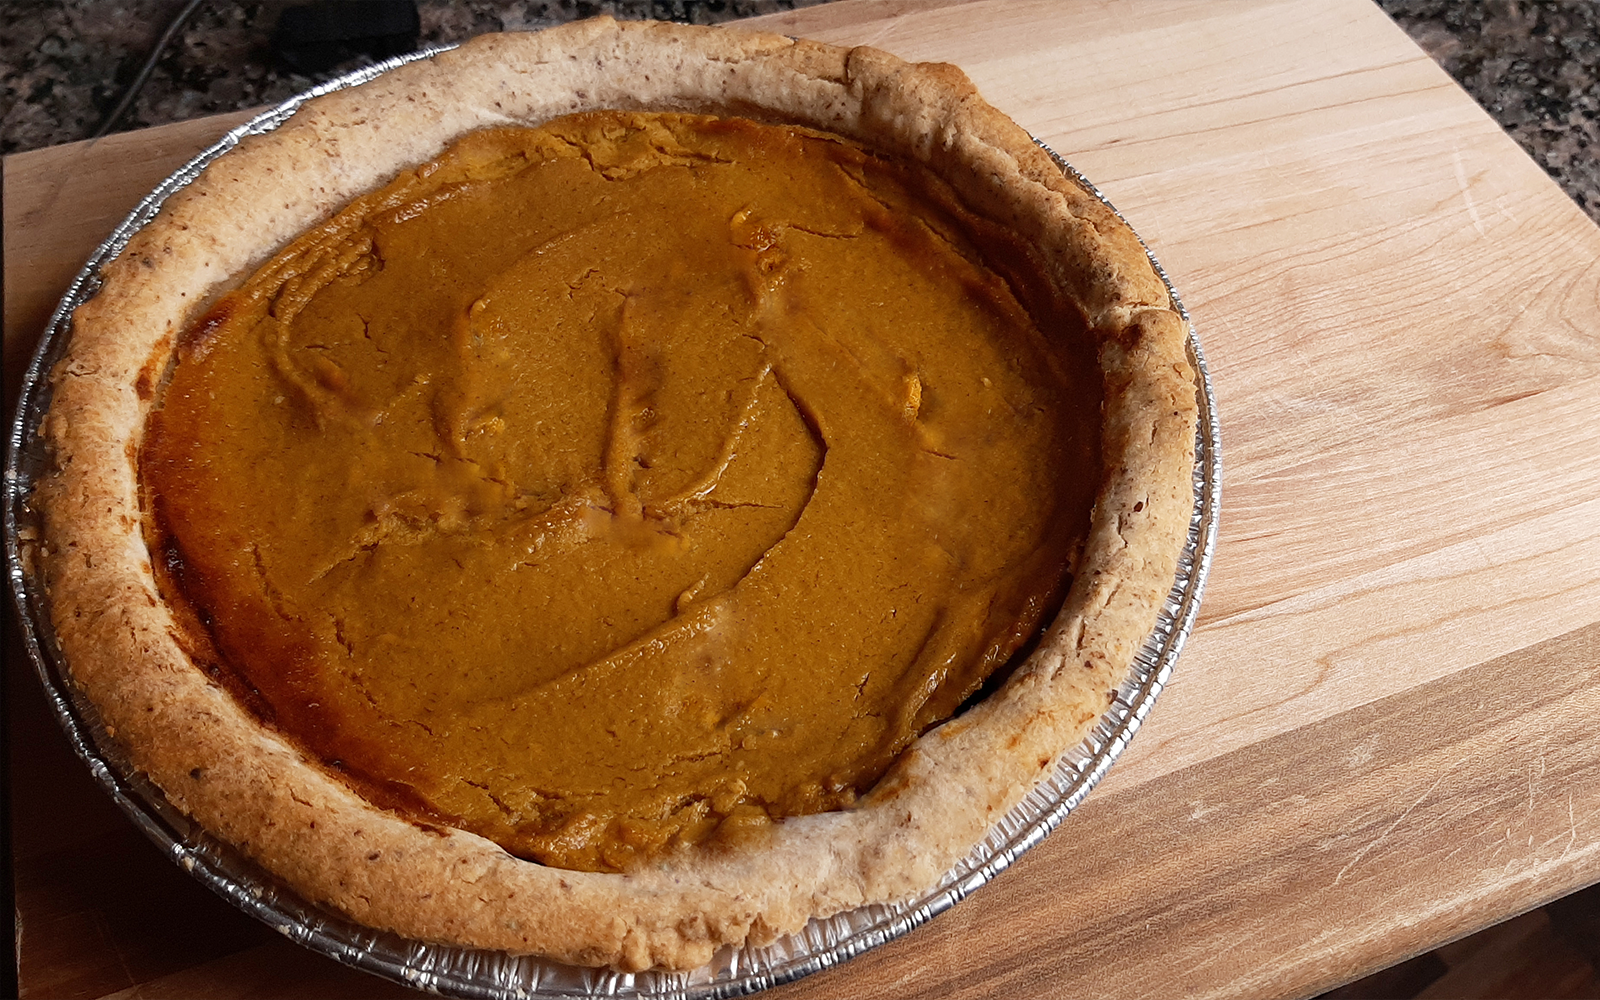 Gluten-free & Vegan Pumpkin Pie Recipe